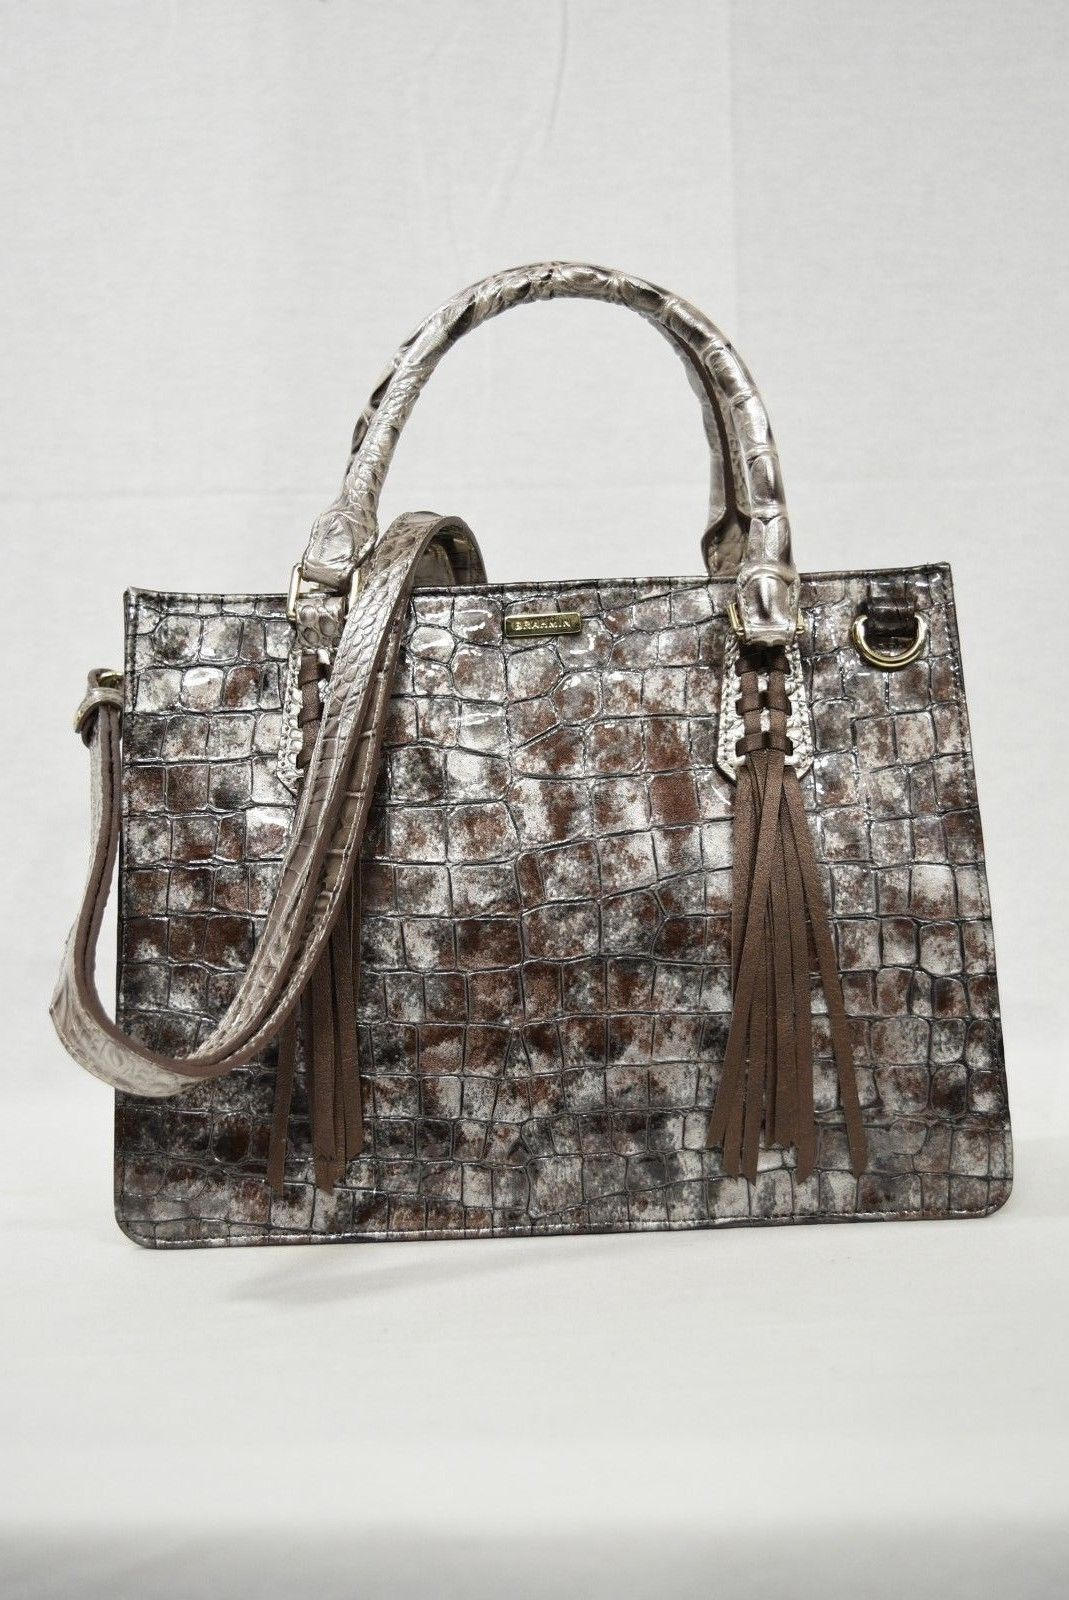 NWT Brahmin Small Camille Leather Satchel/Shoulder Bag in Brown Charente image 6